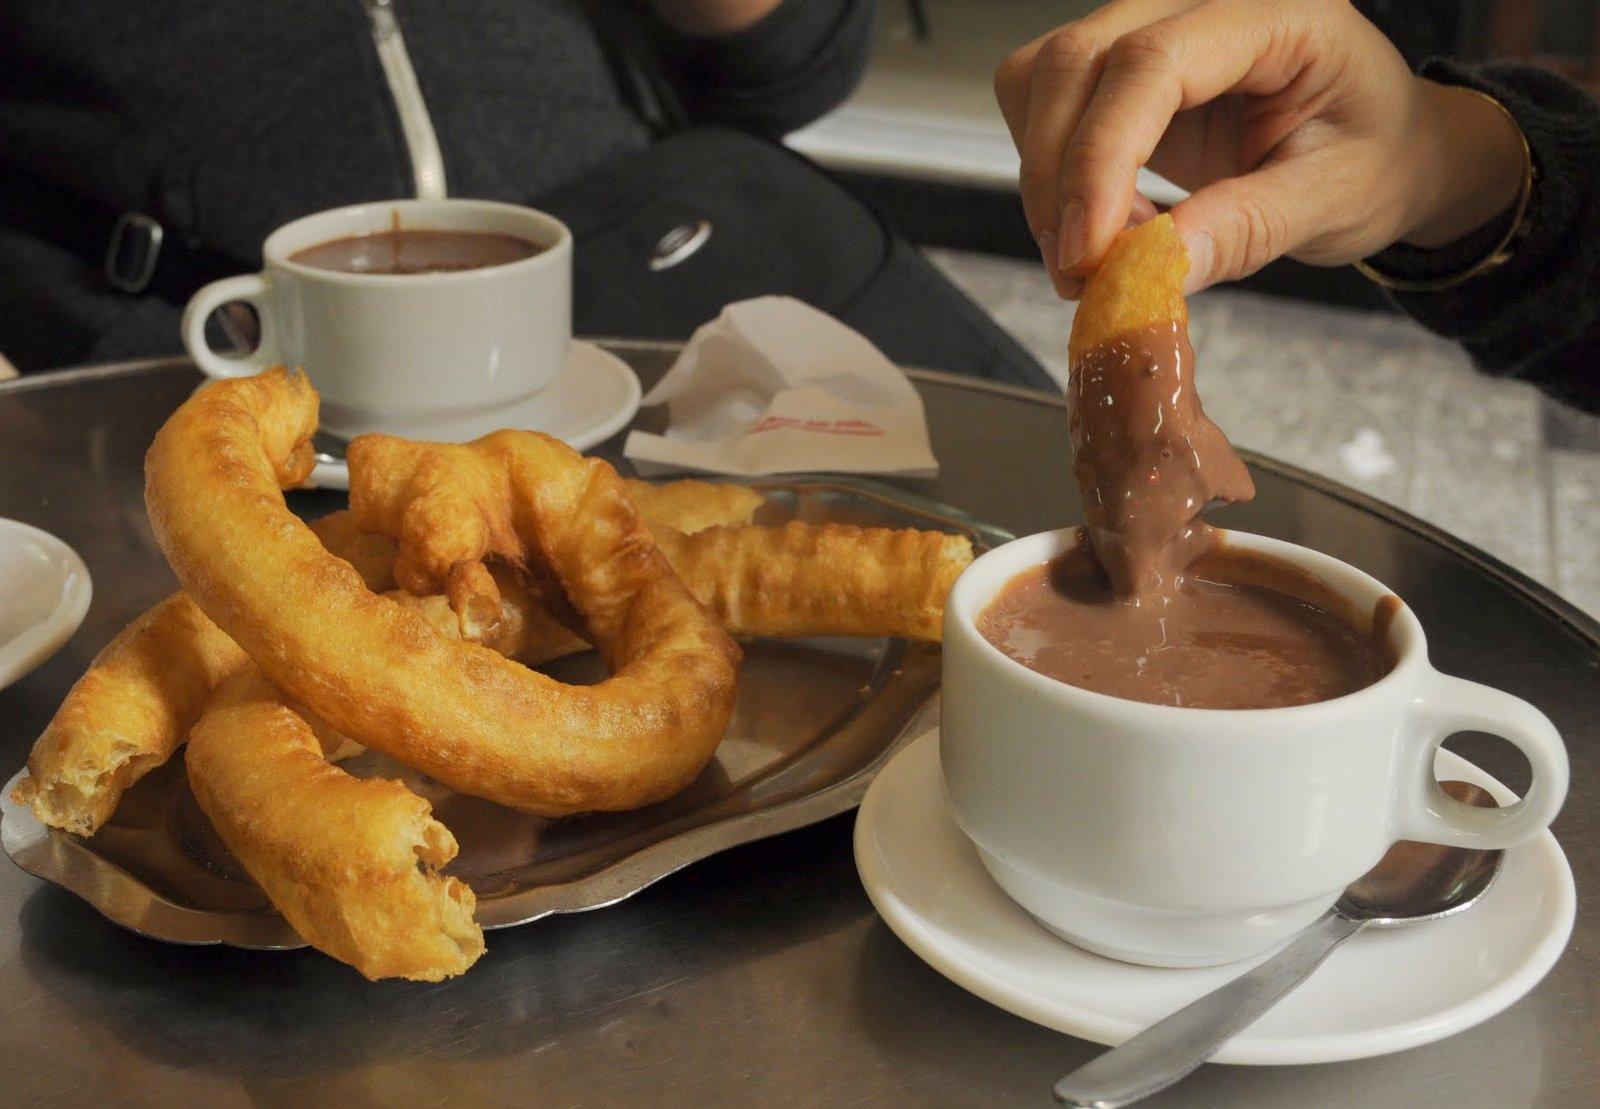 Churros Con Chocolate at Casa Aranda, Malaga, Spain ...